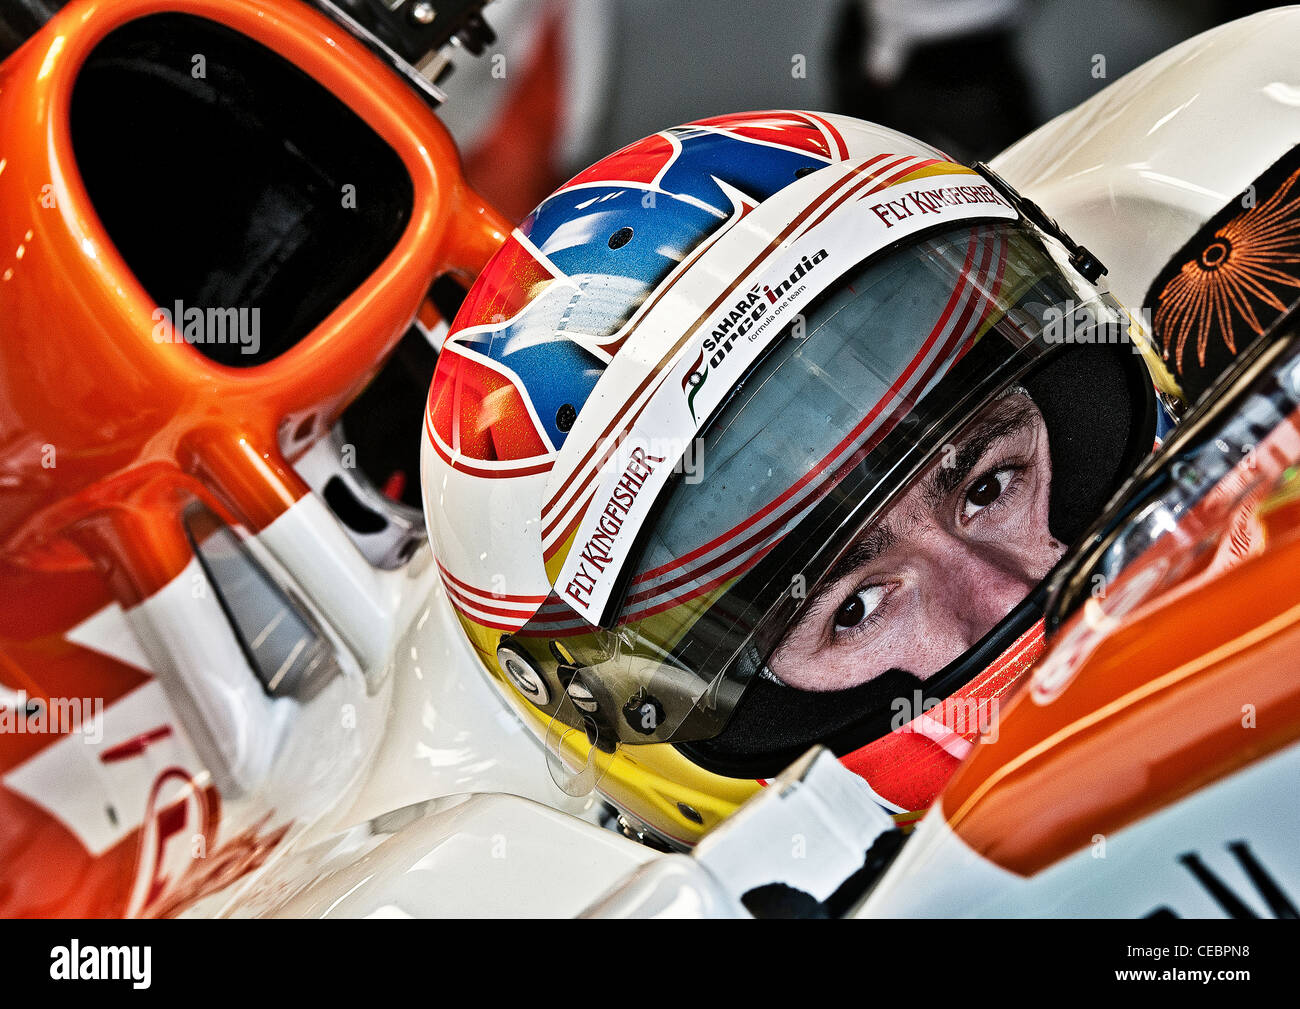 Paul Di Resta waiting patiently in his car while his mechanics get ready for his first run in the 2012 VJM05 Sahara - Stock Image